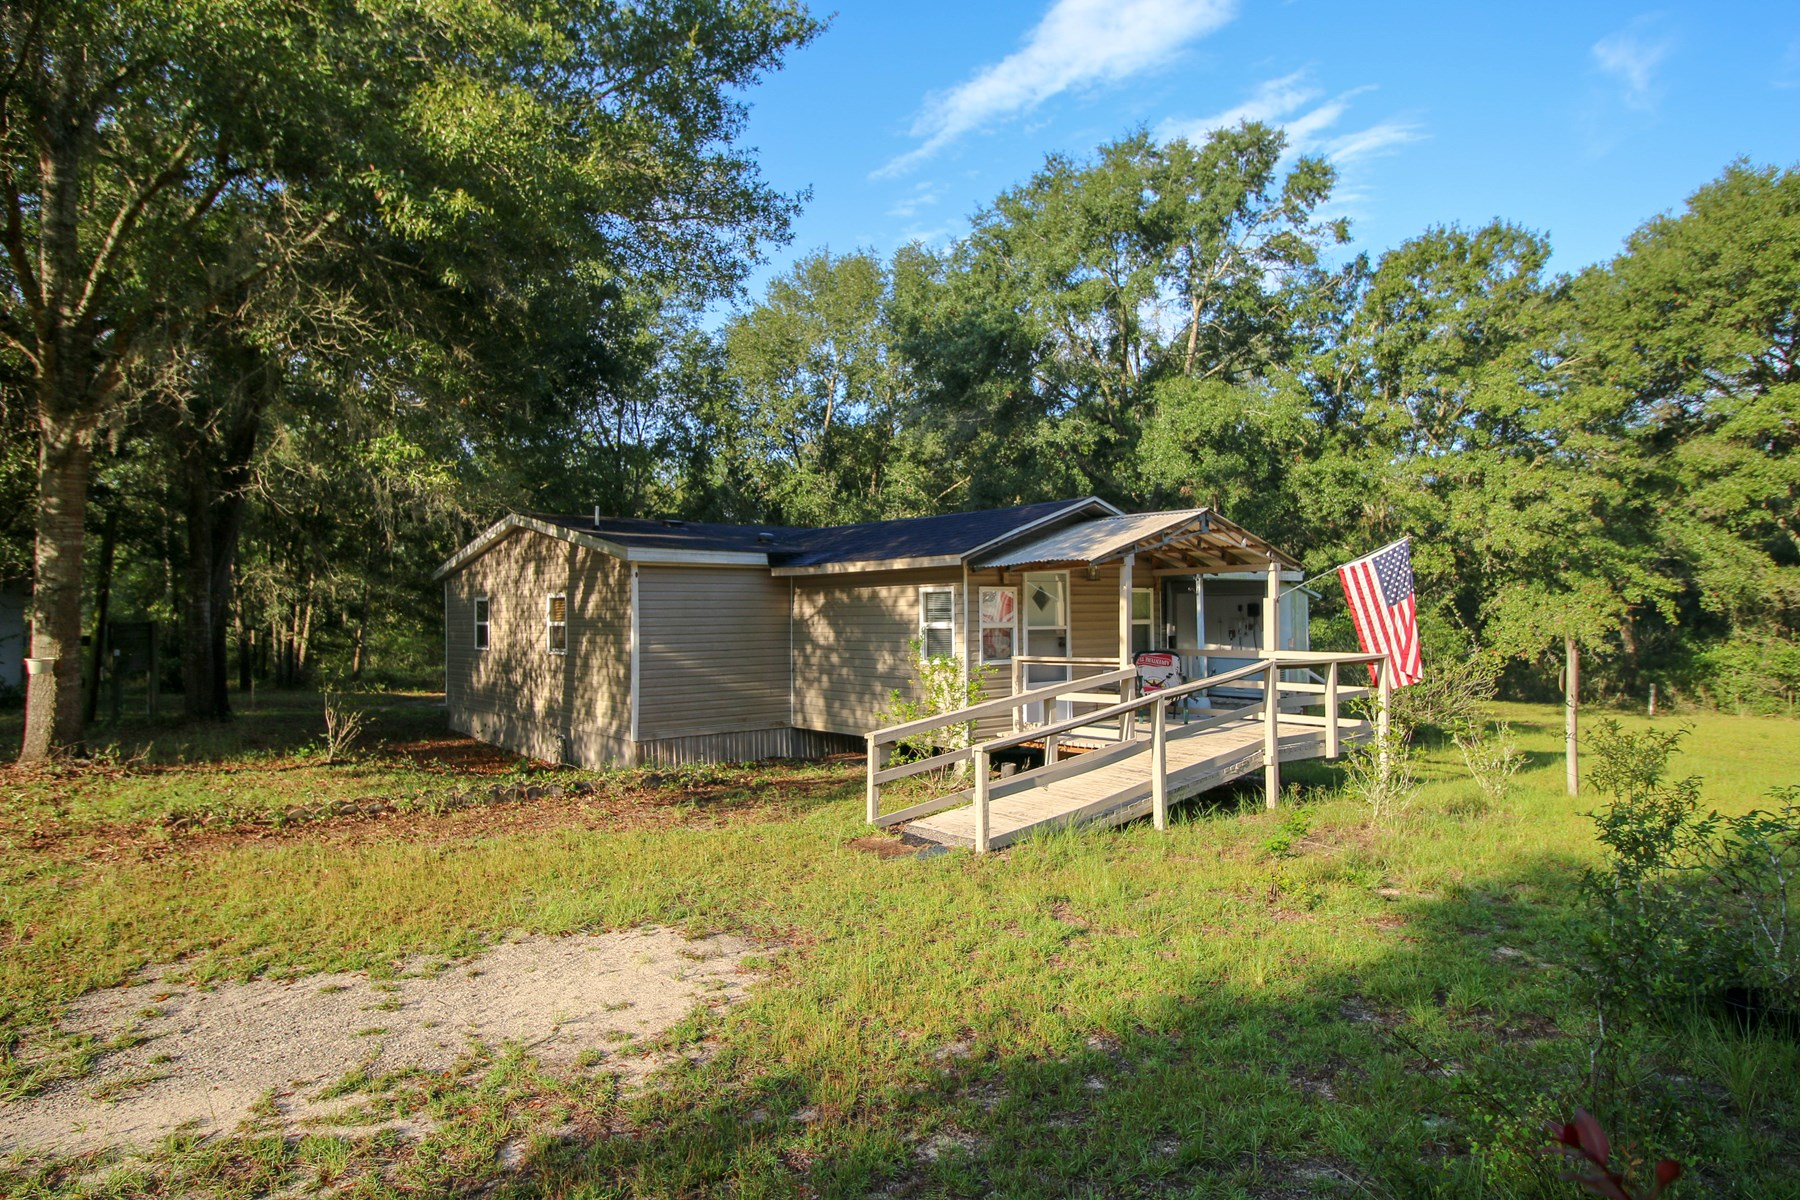 COUNTRY LIVING - 3BR/2BA mobile home in Bell, Florida